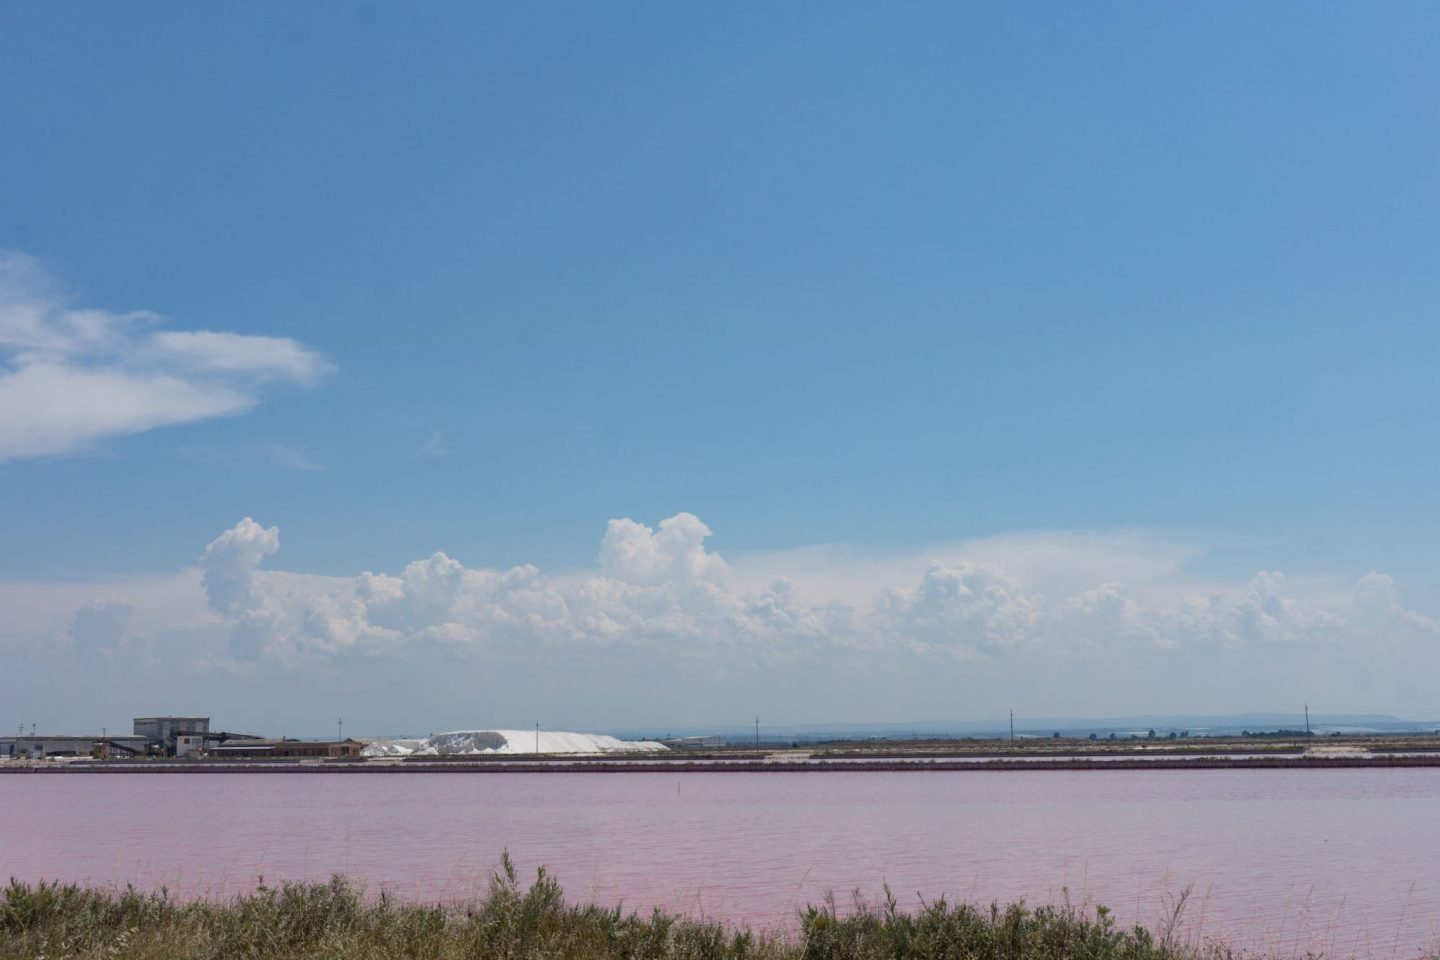 Margherita de Savoia Puglia Nadia El Ferdaoussi Travel Blogger and Writer Italy Salt pans lakes pink